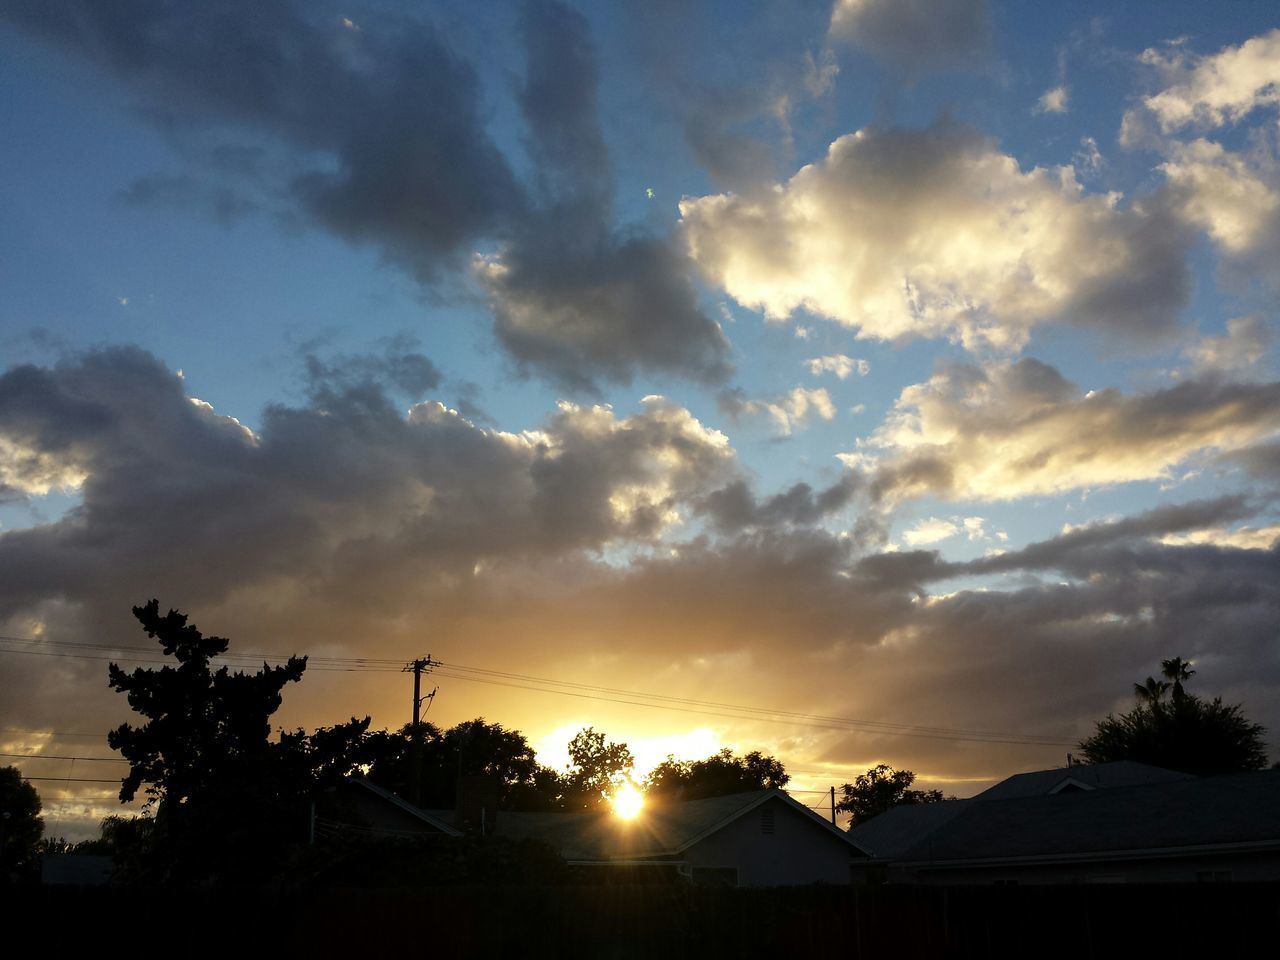 sunset, cloud - sky, sky, silhouette, nature, beauty in nature, scenics, no people, built structure, tree, tranquil scene, outdoors, tranquility, building exterior, architecture, day